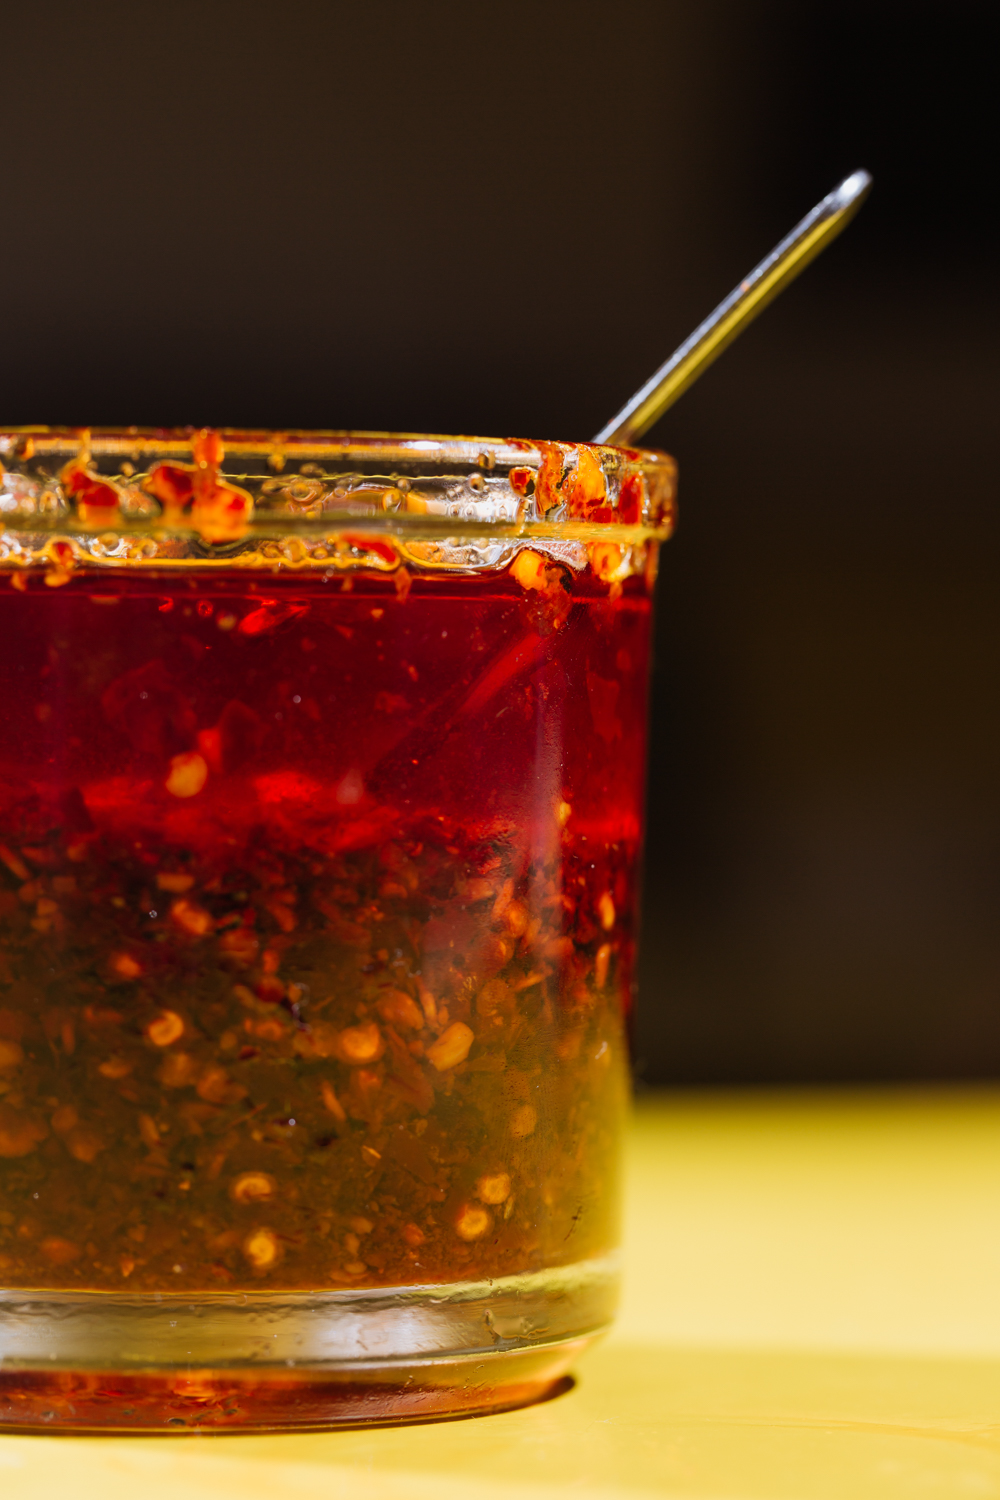 House-made hot chili sauce can be purchased (just ask)